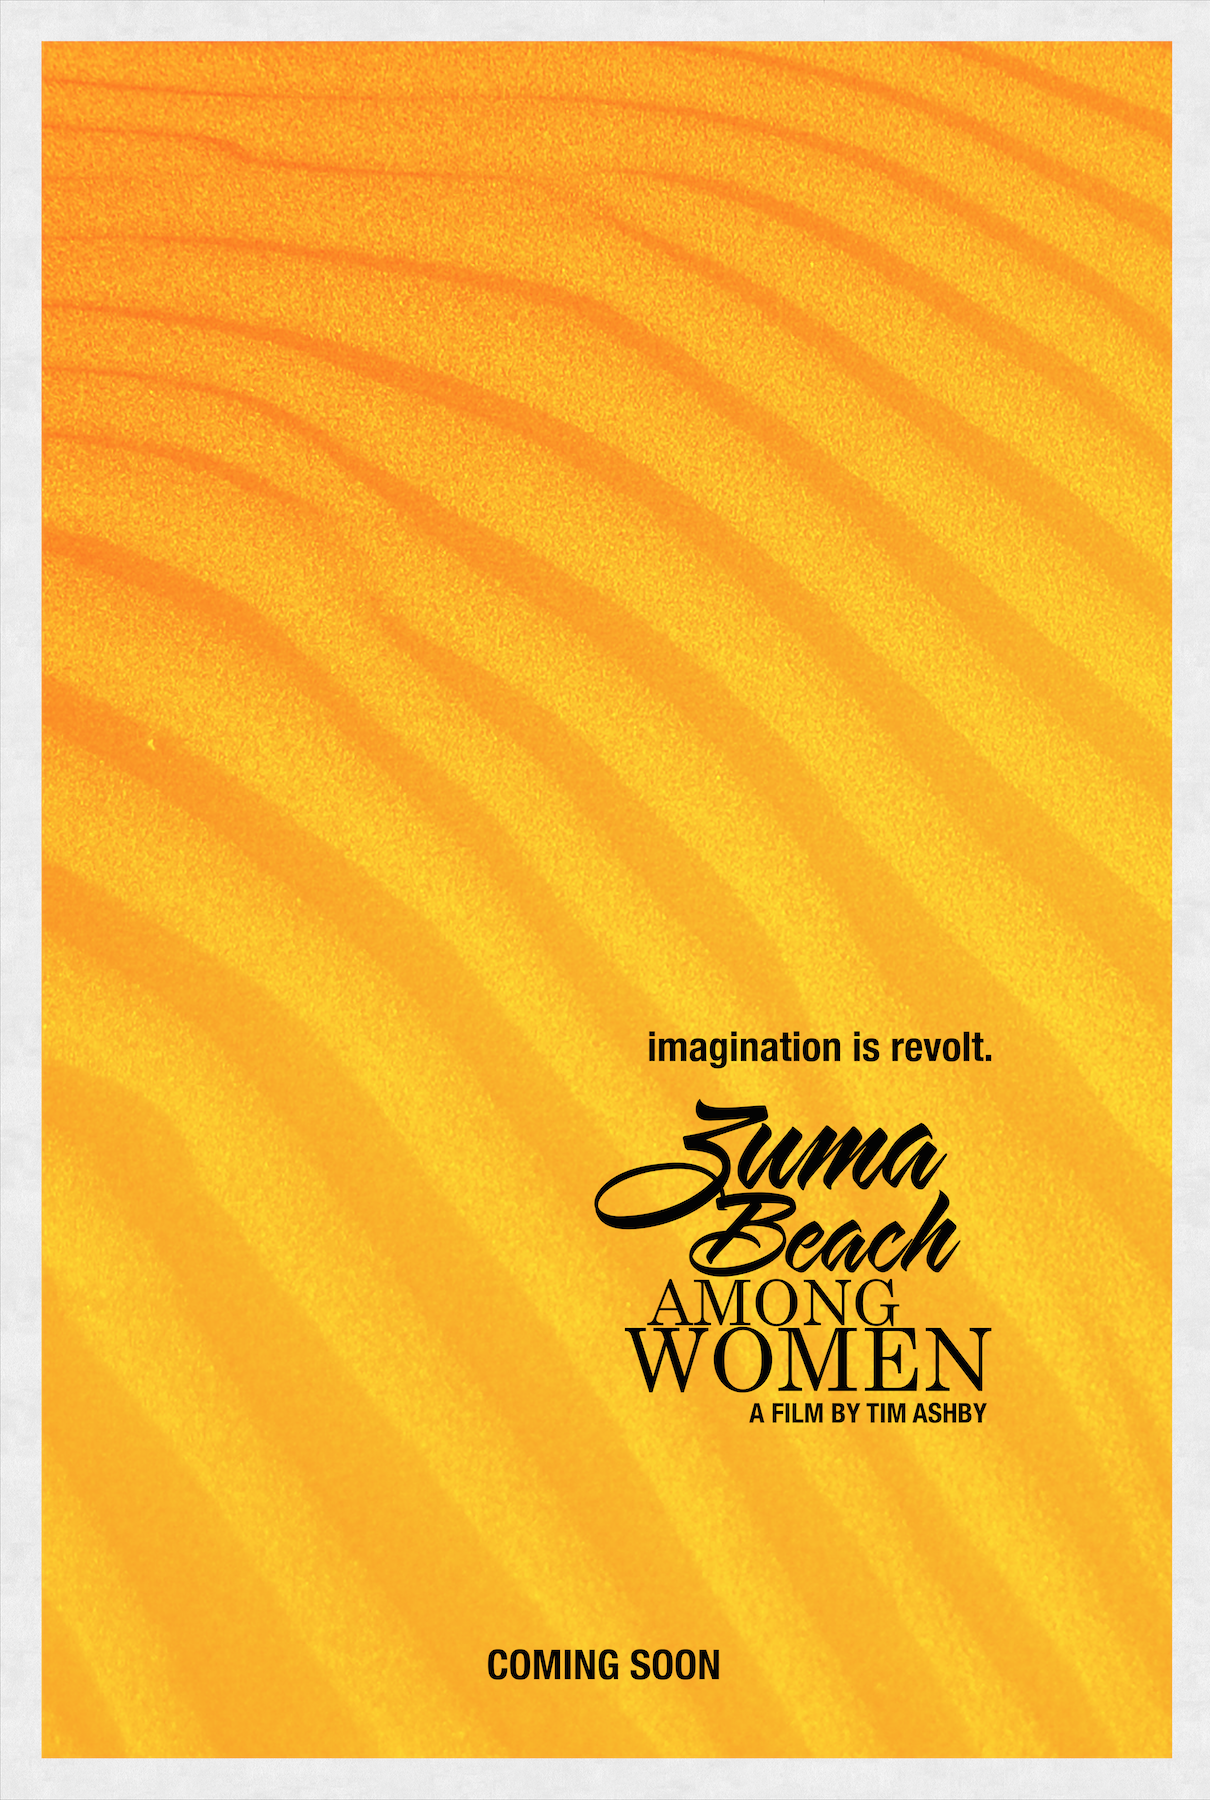 Zuma Beach Among Women (2017)